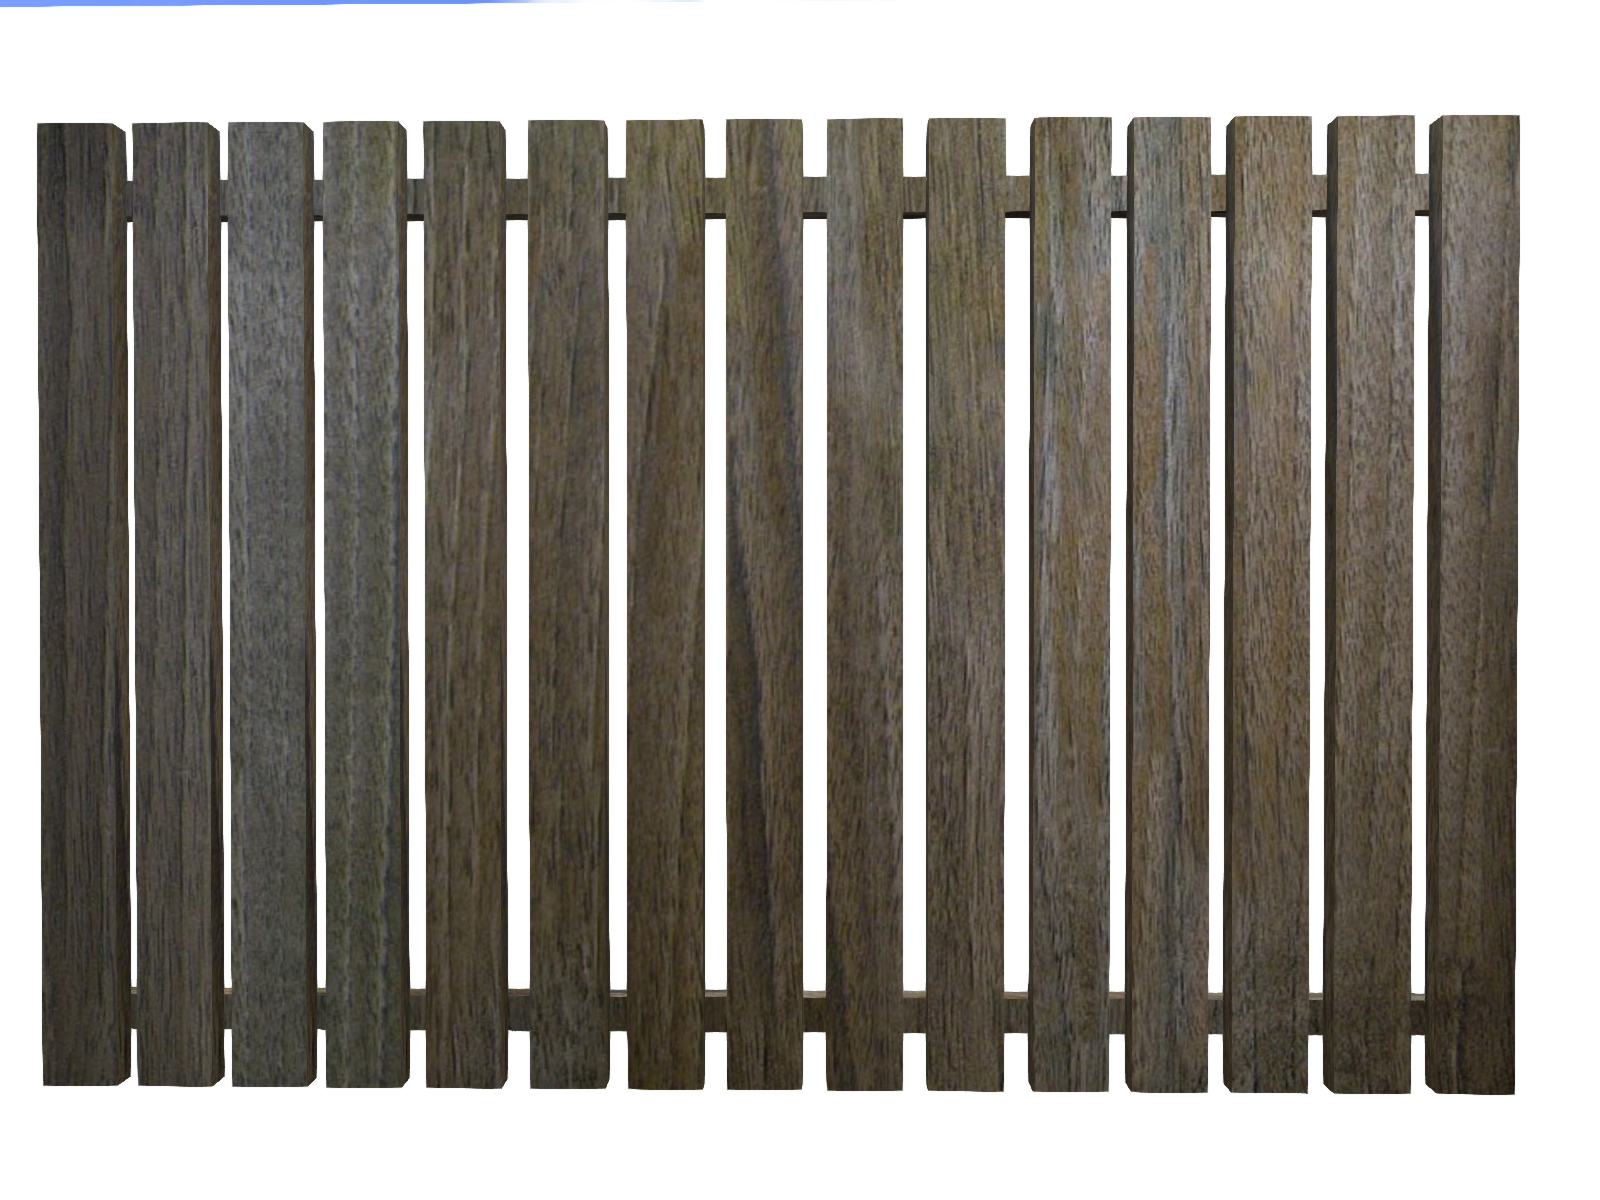 Easymesh_Wooden_Planks_Wall_Ground_1_2_adv_by_Harley_Schylo_Littleharley_Second_Life  Harley Schylo